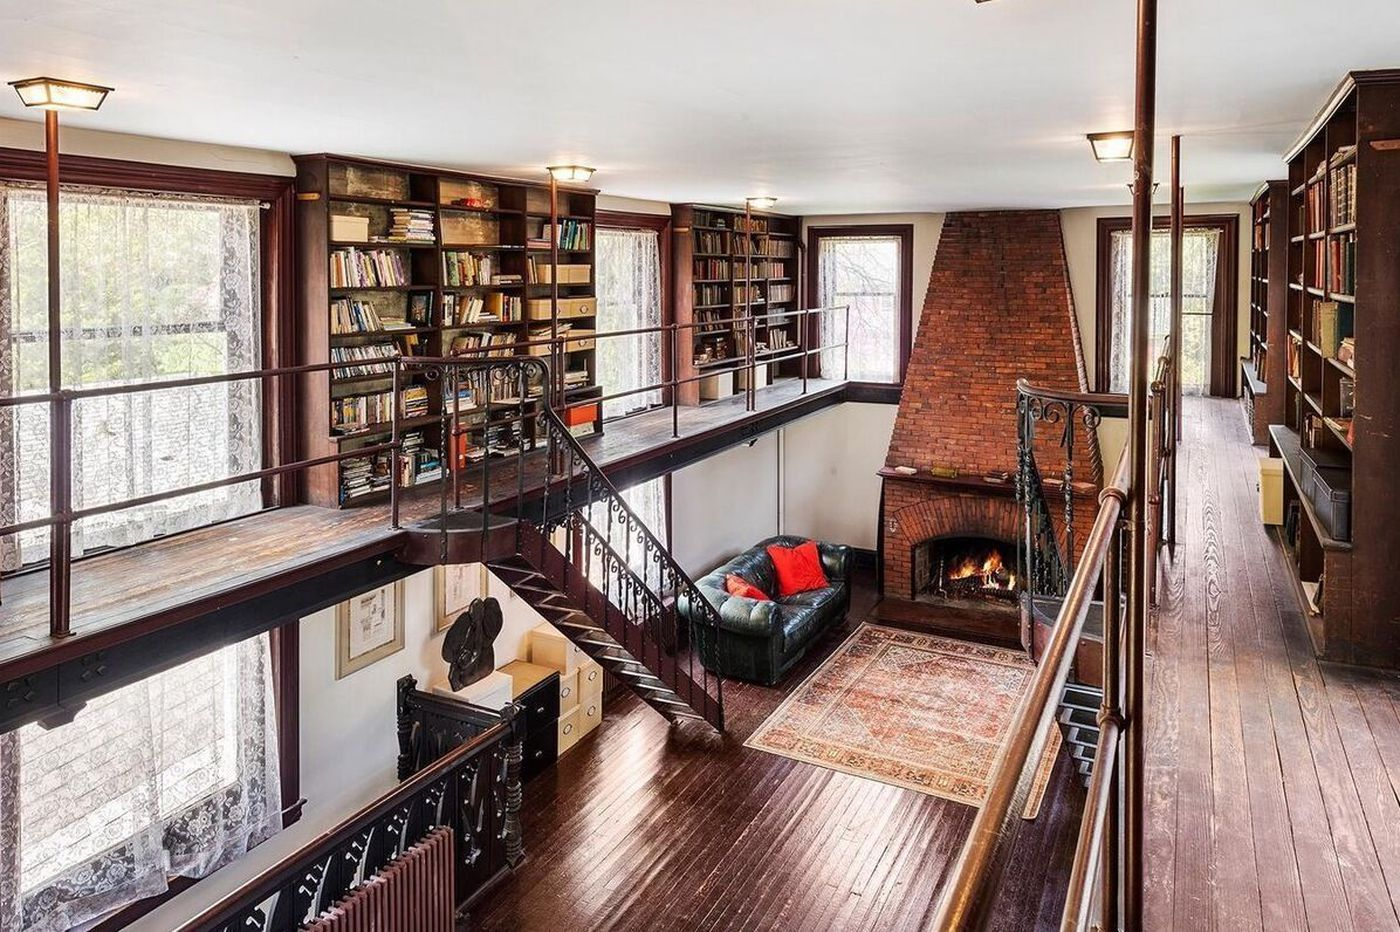 On the market: Wallingford home with Frank Furness library for $599,000